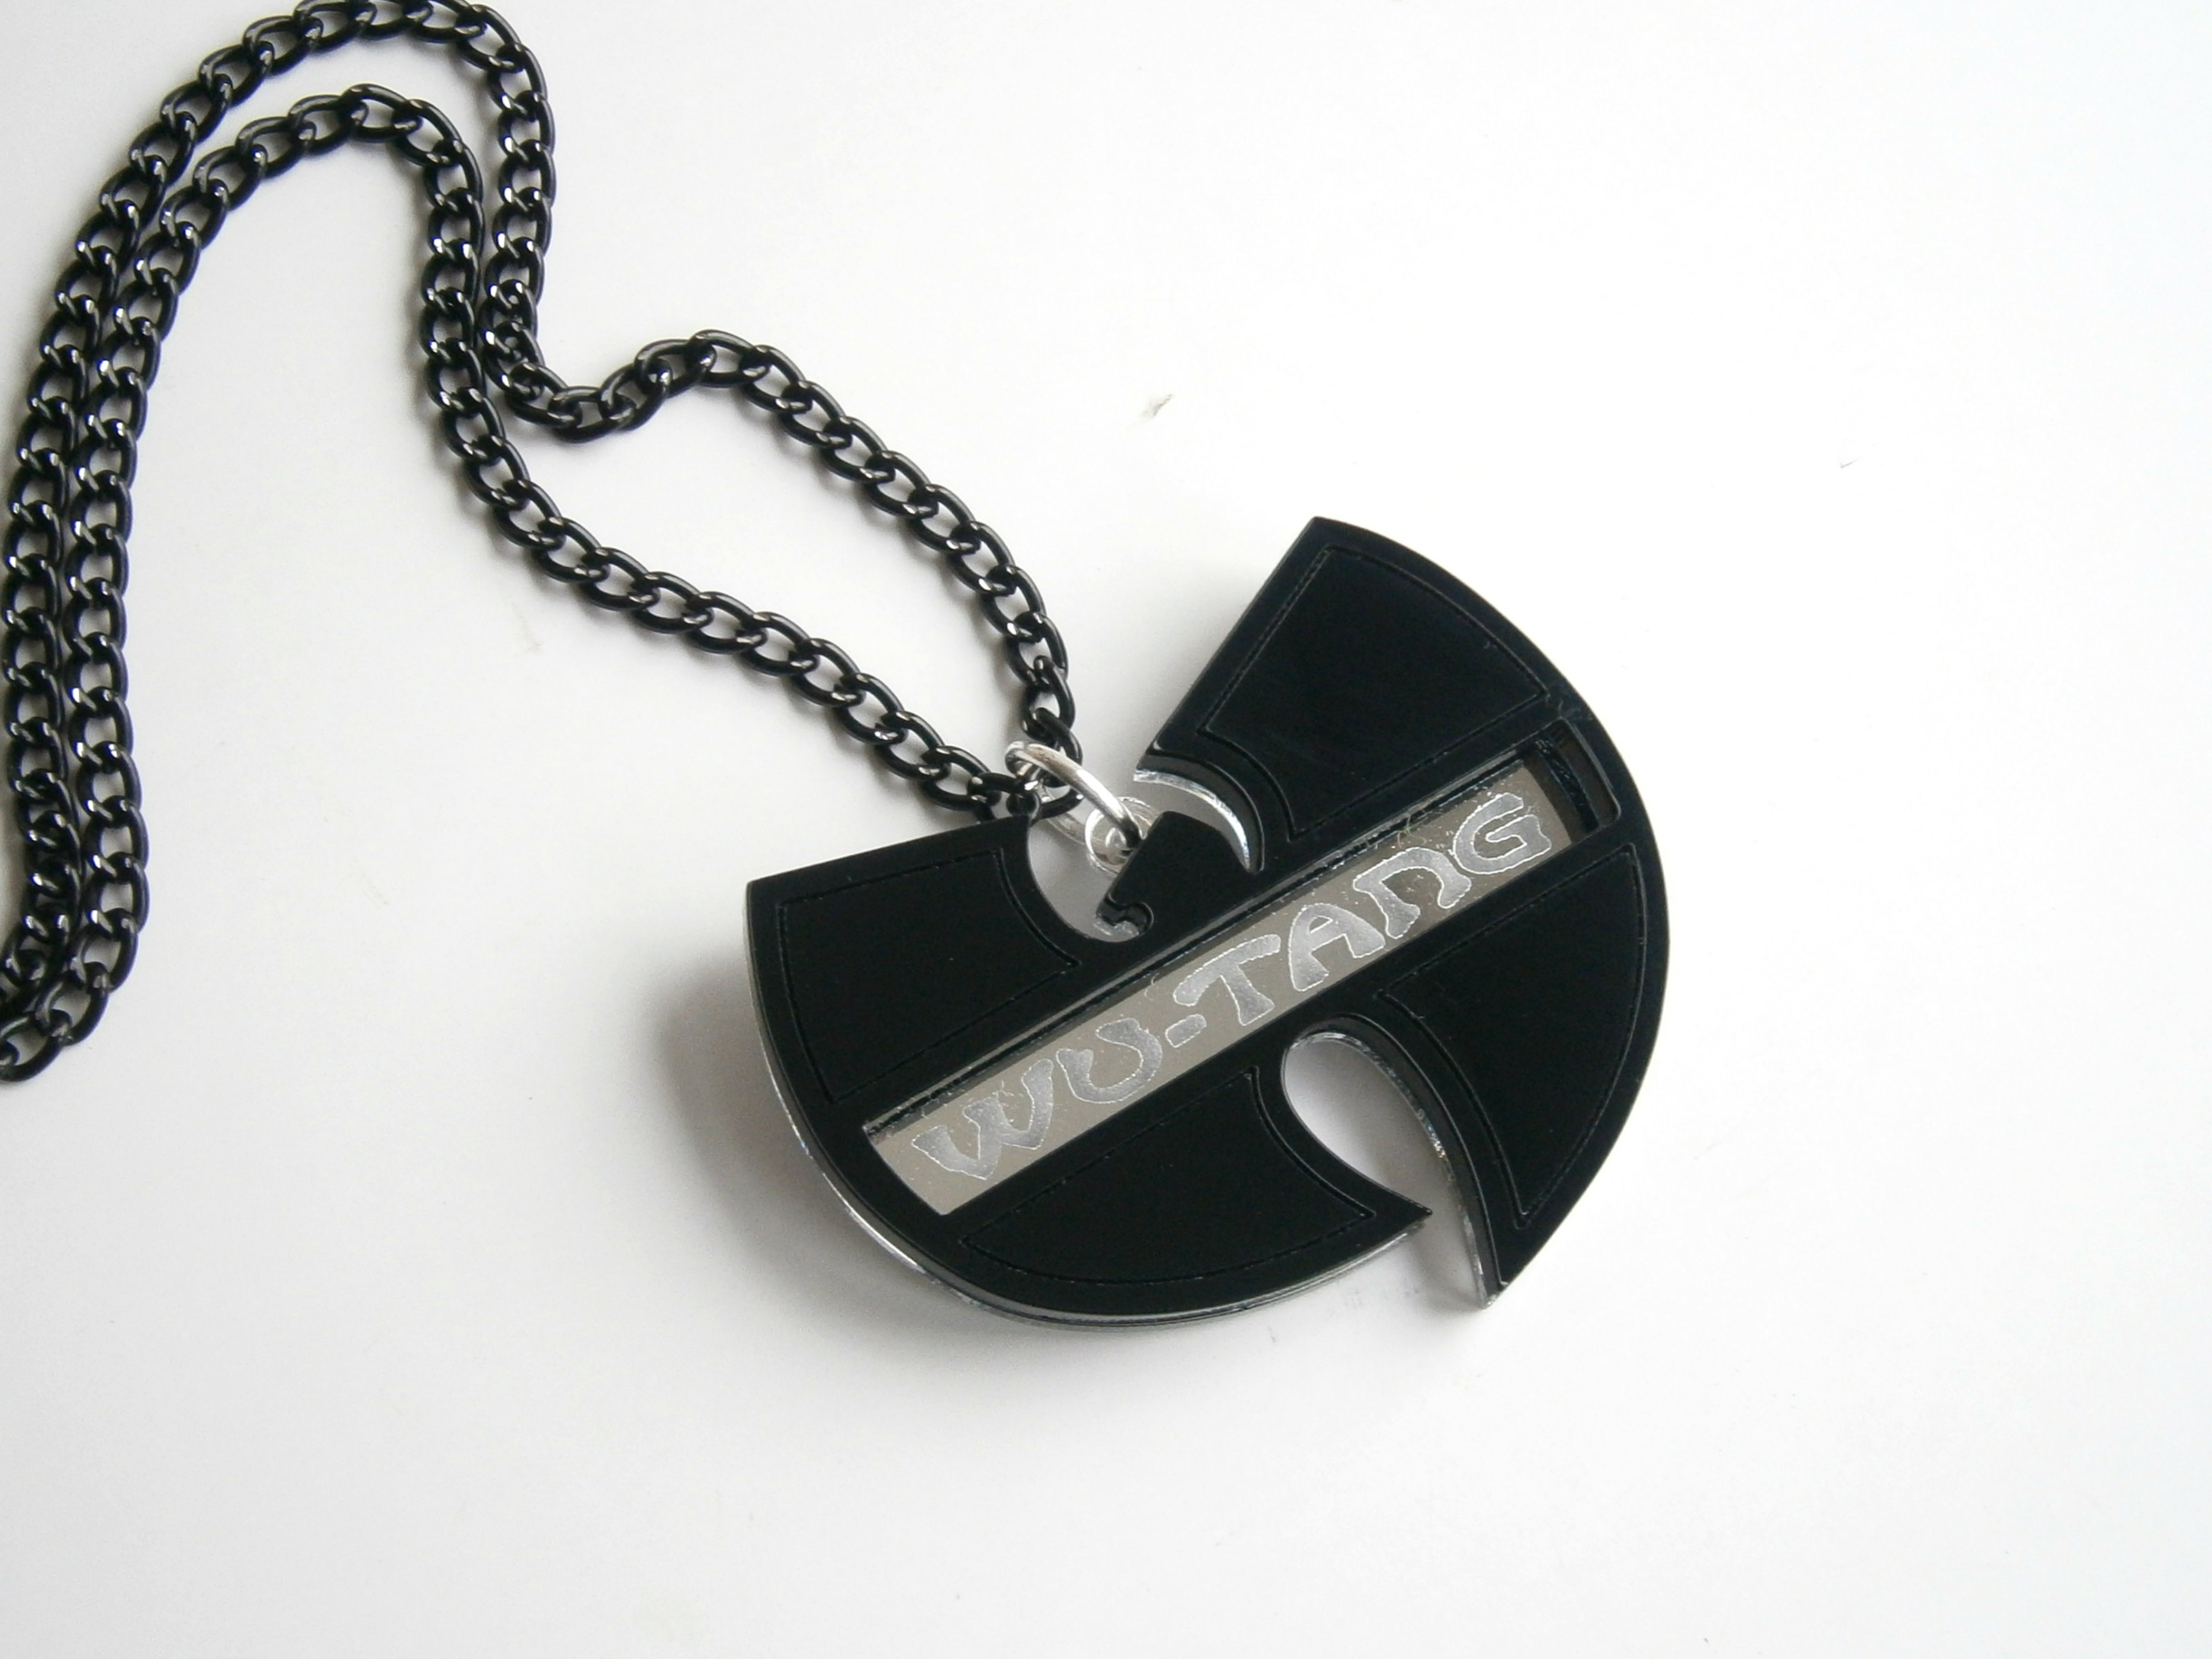 wu tang necklace laser cut and engraved hip hop pendant